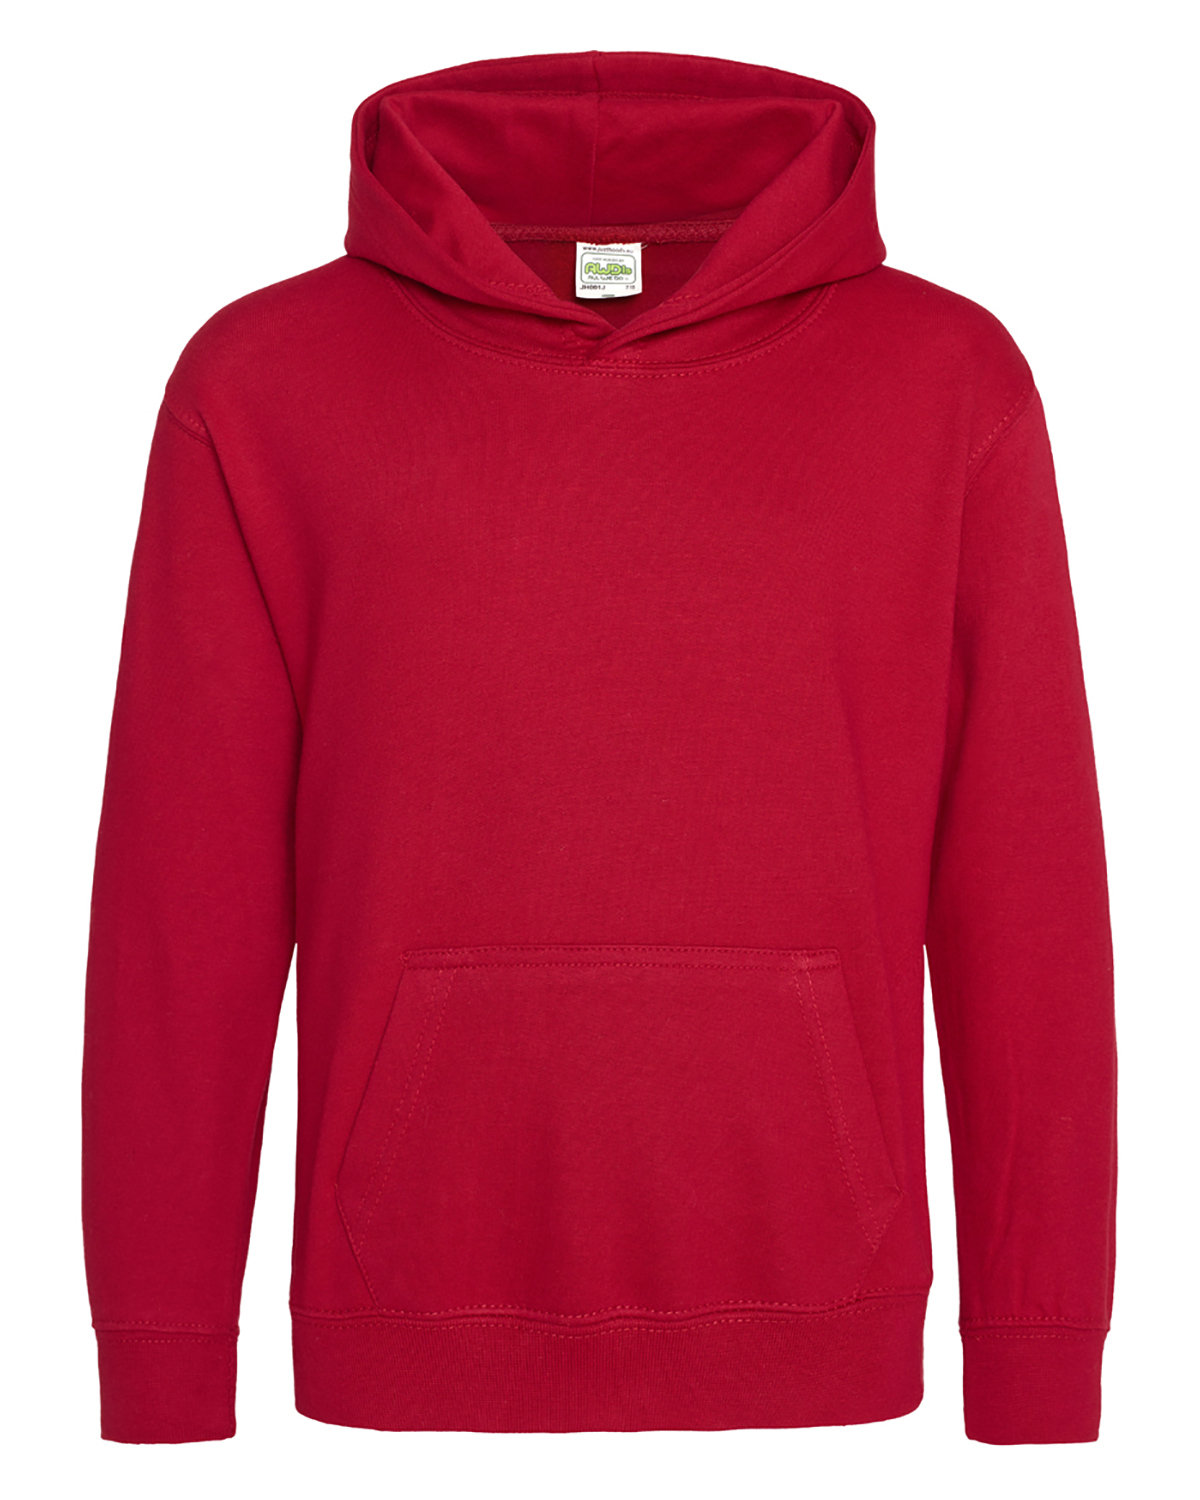 Just Hoods By AWDis Youth 80/20 Midweight College Hooded Sweatshirt FIRE RED